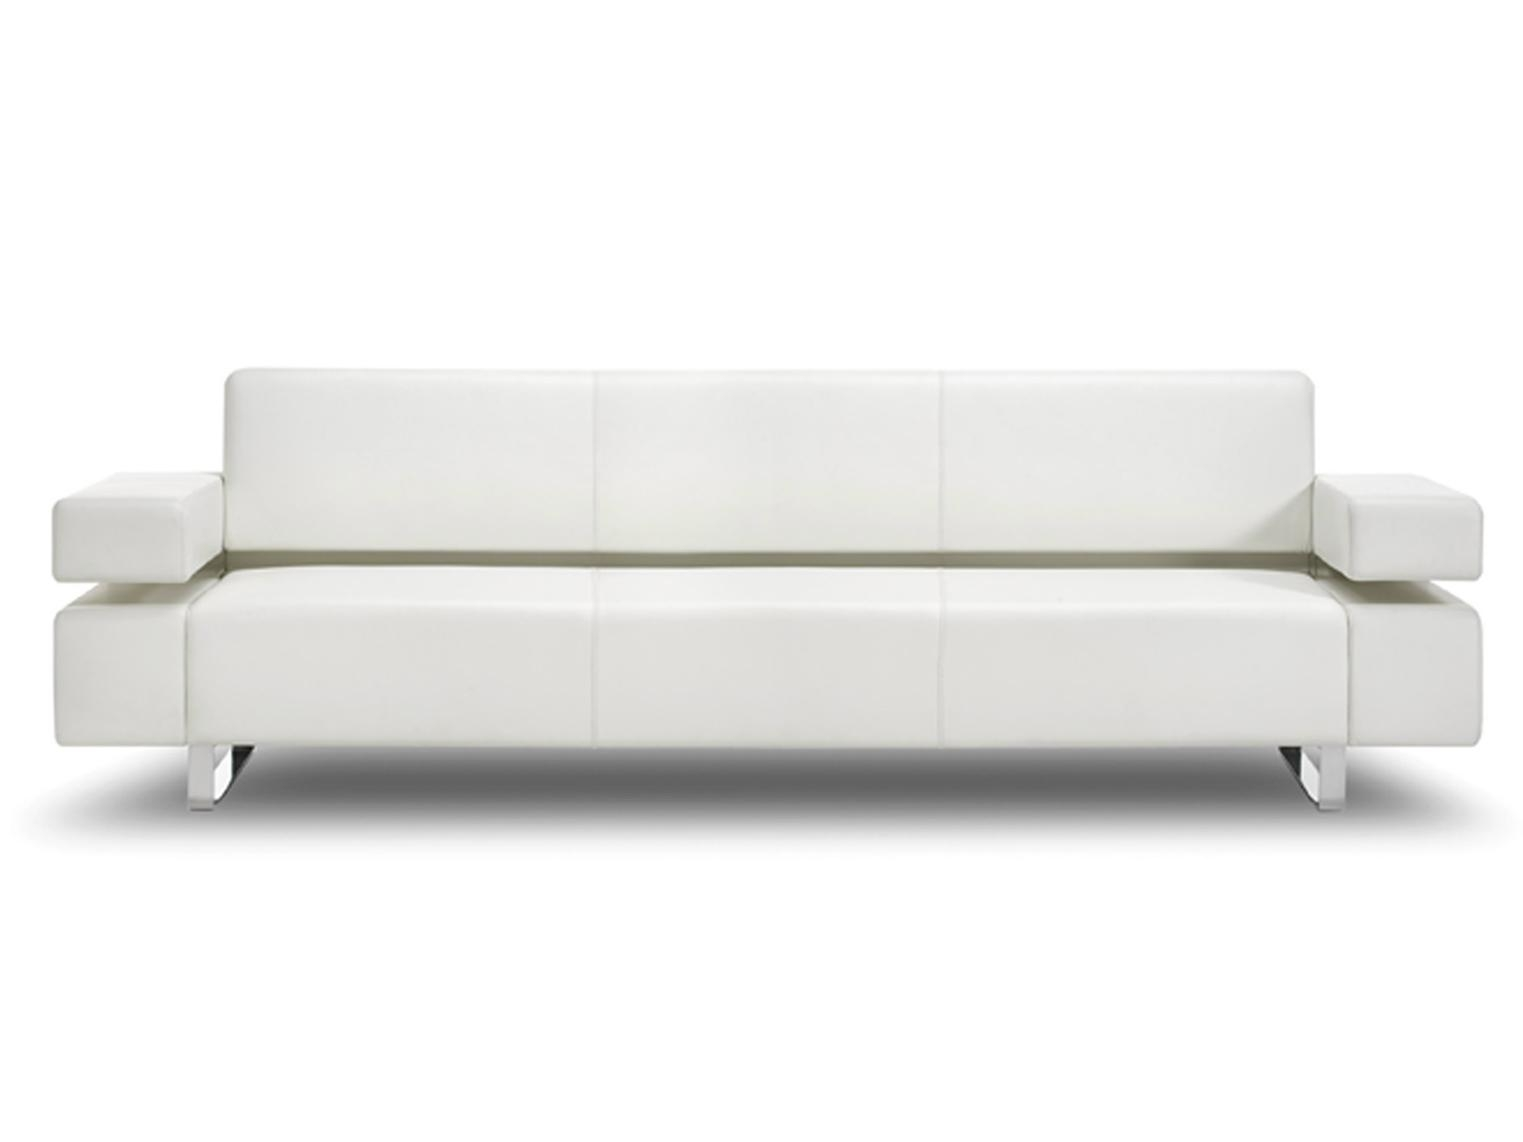 Poseidone | 3 Seater Sofatrue Design Design Leonardo Rossano With Regard To 3 Seater Leather Sofas (View 12 of 20)